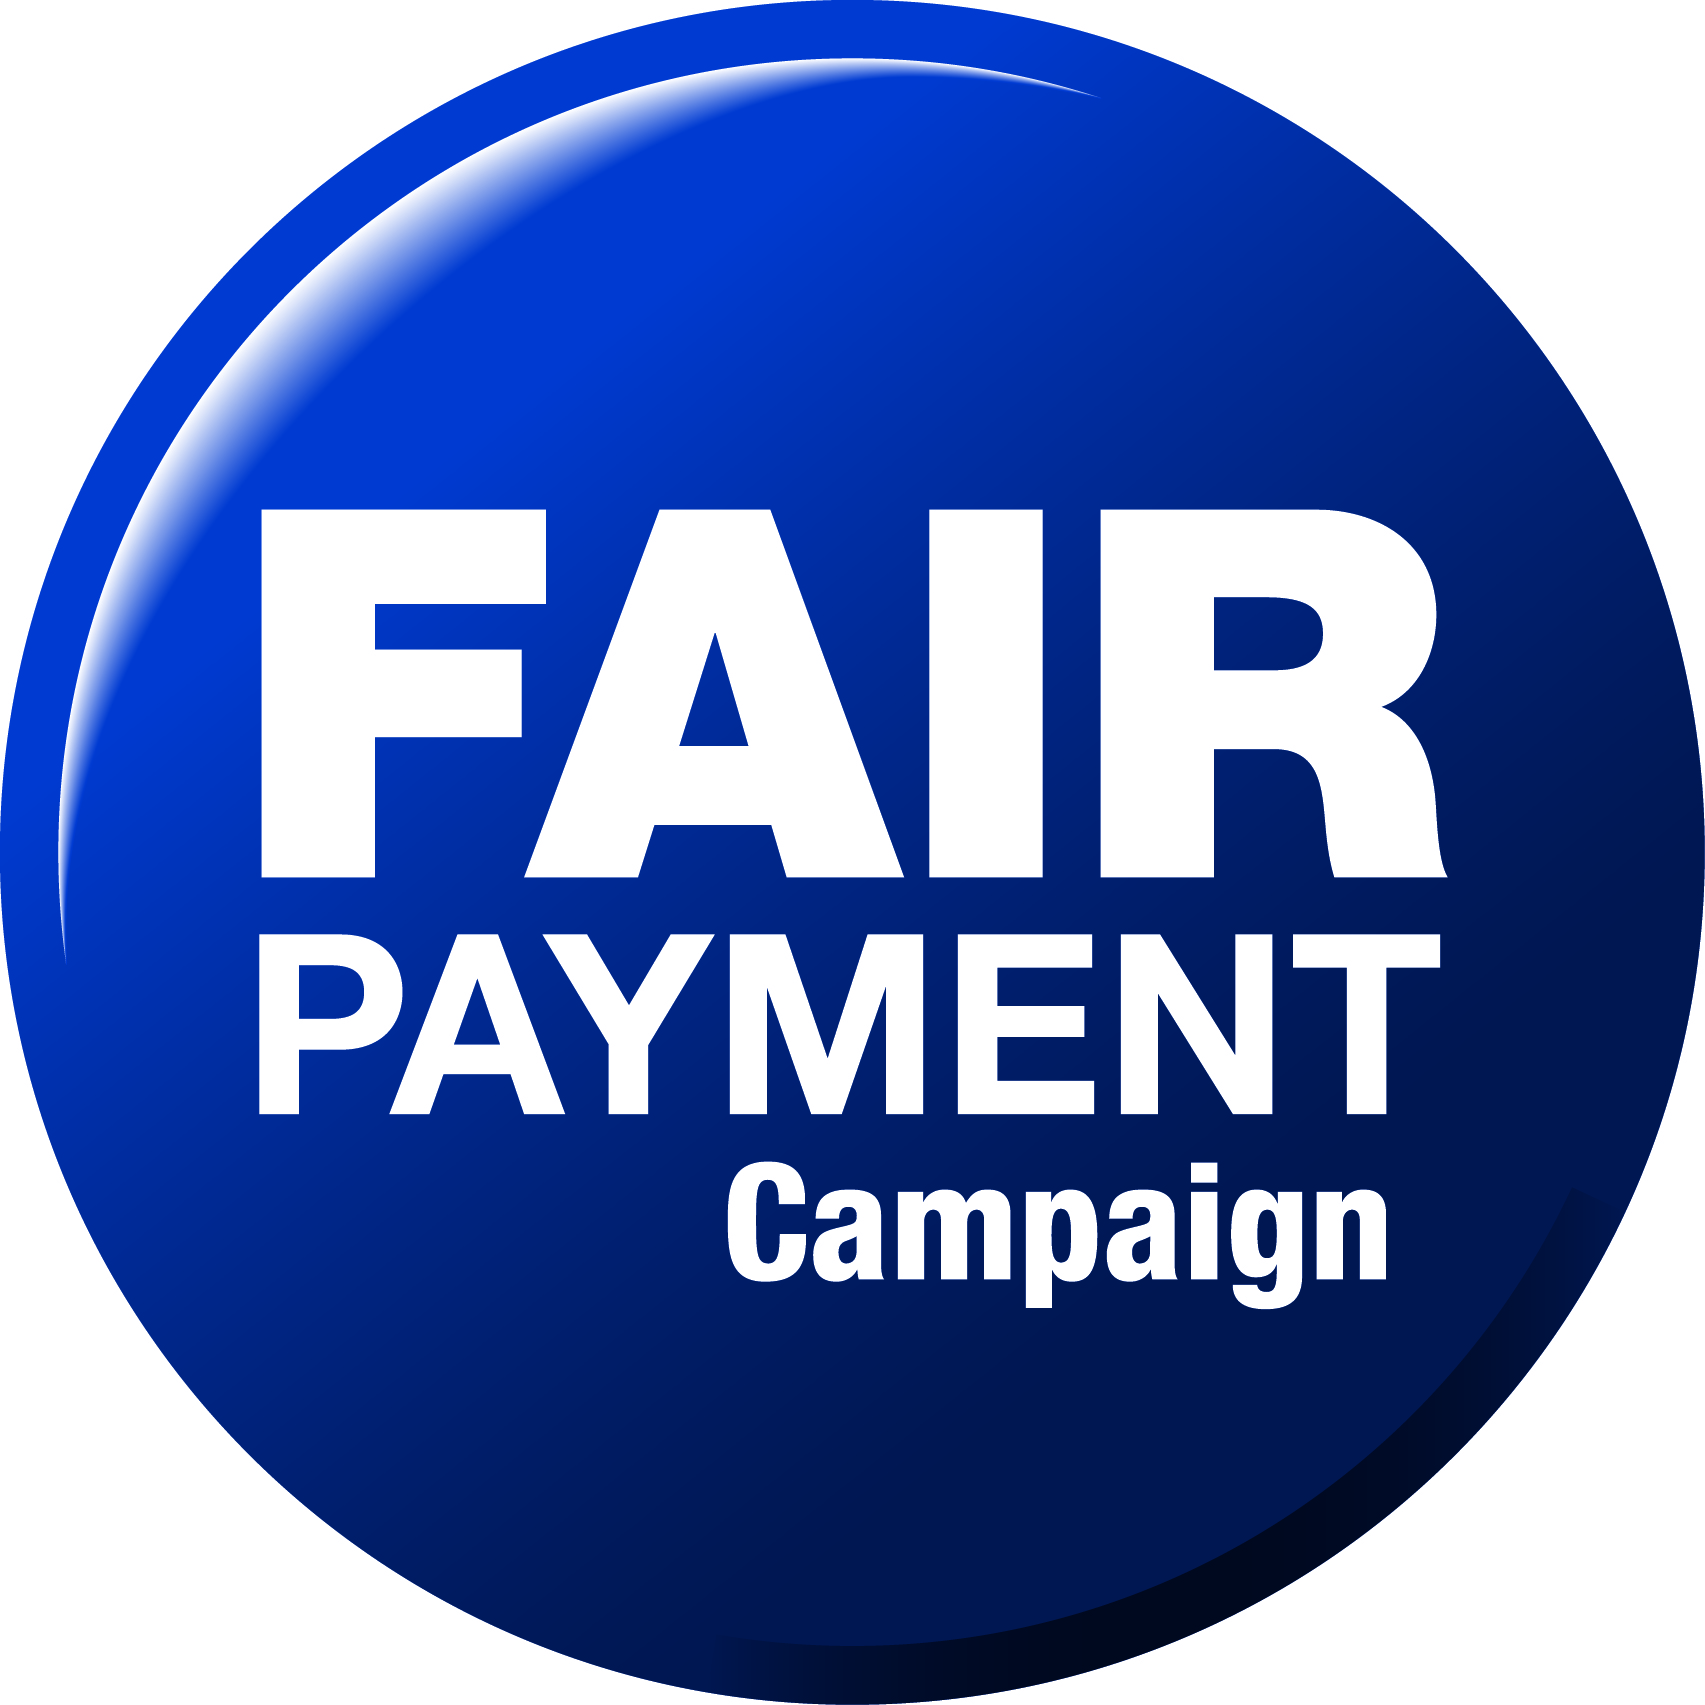 The Fair Payment Campaign